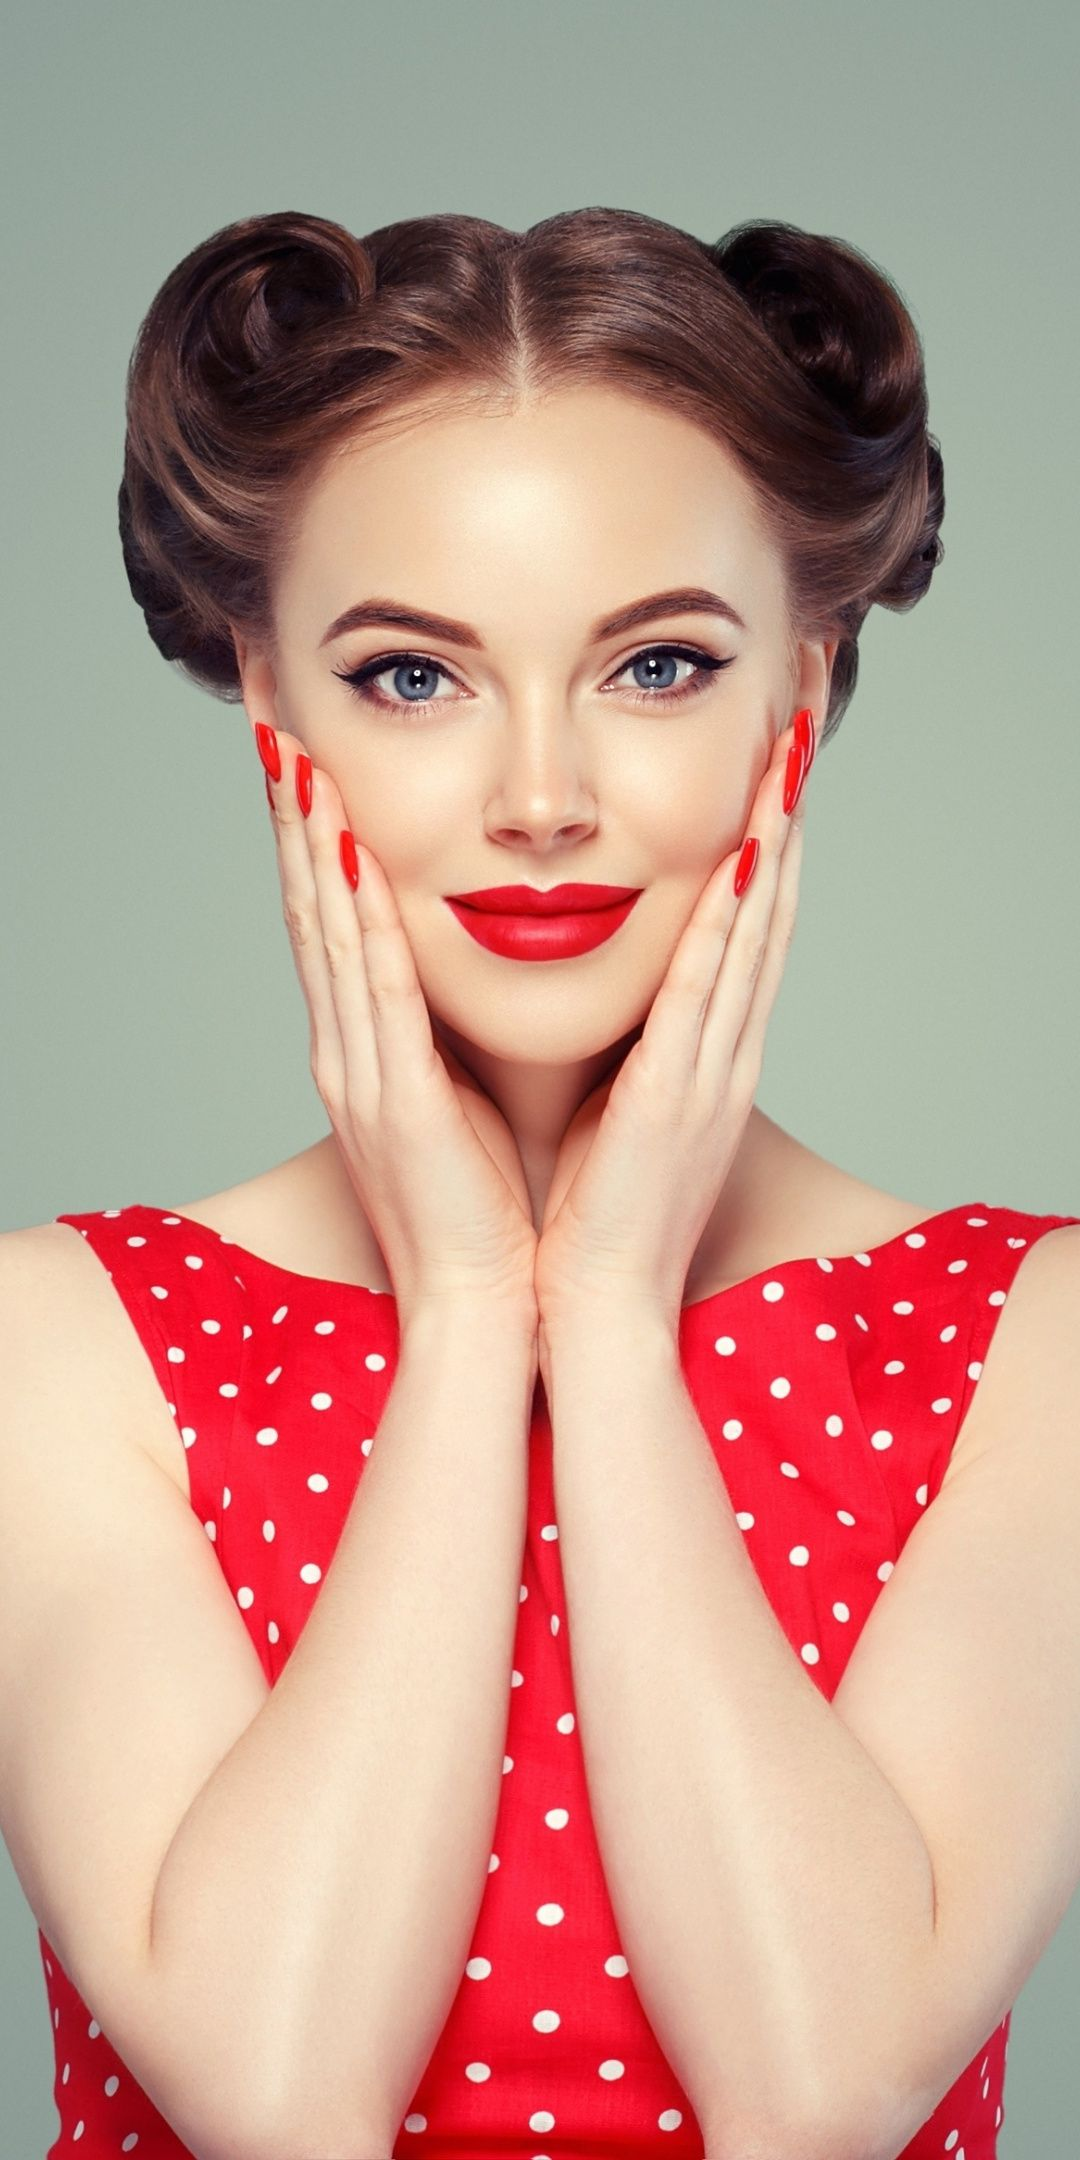 Red Lips Makeup Smile Woman Model 1080x2160 Wallpaper Red